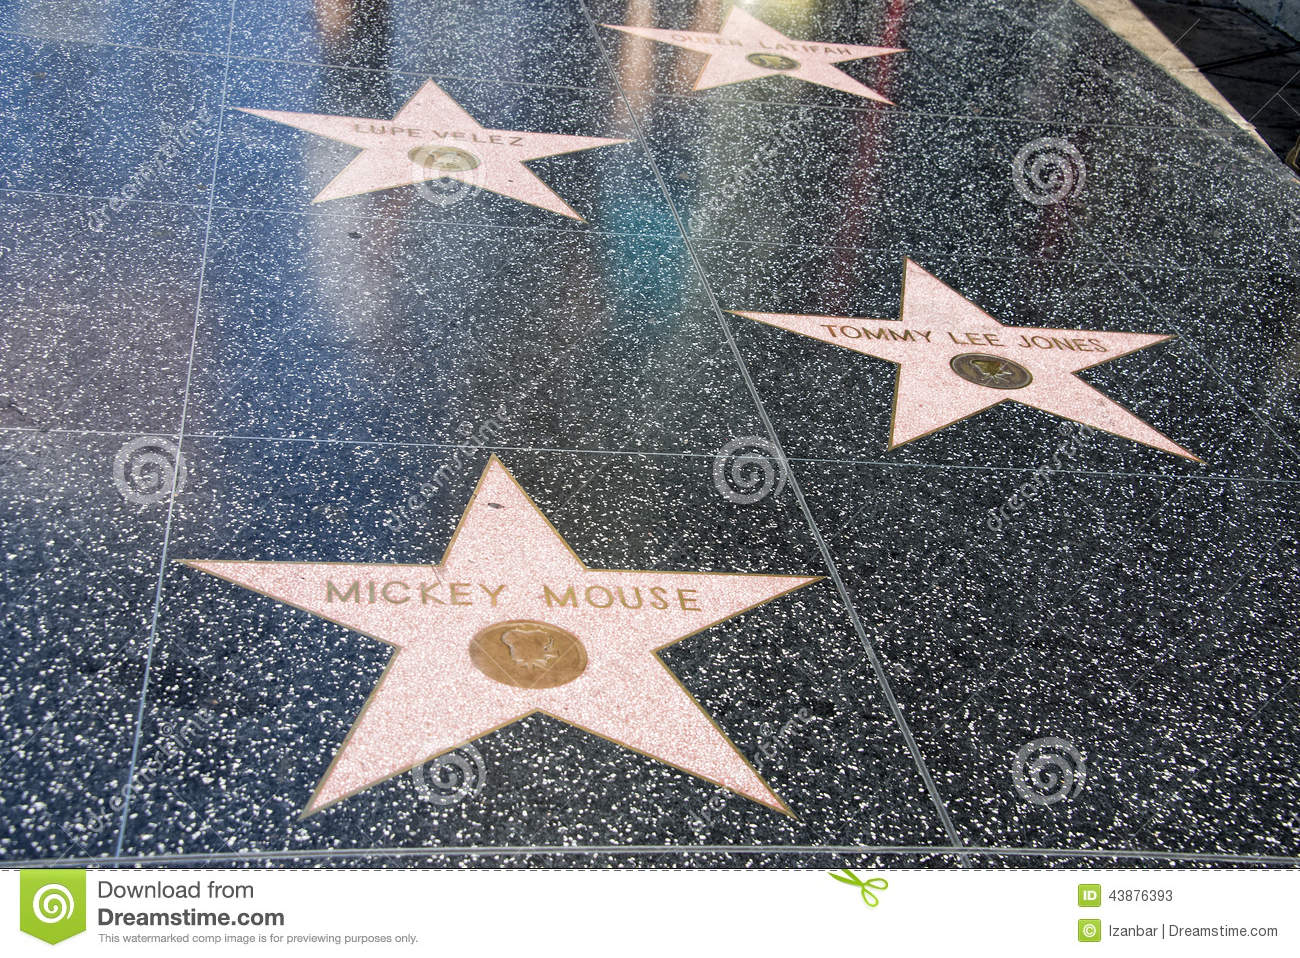 Hollywood spacer sława Mickey Mouse